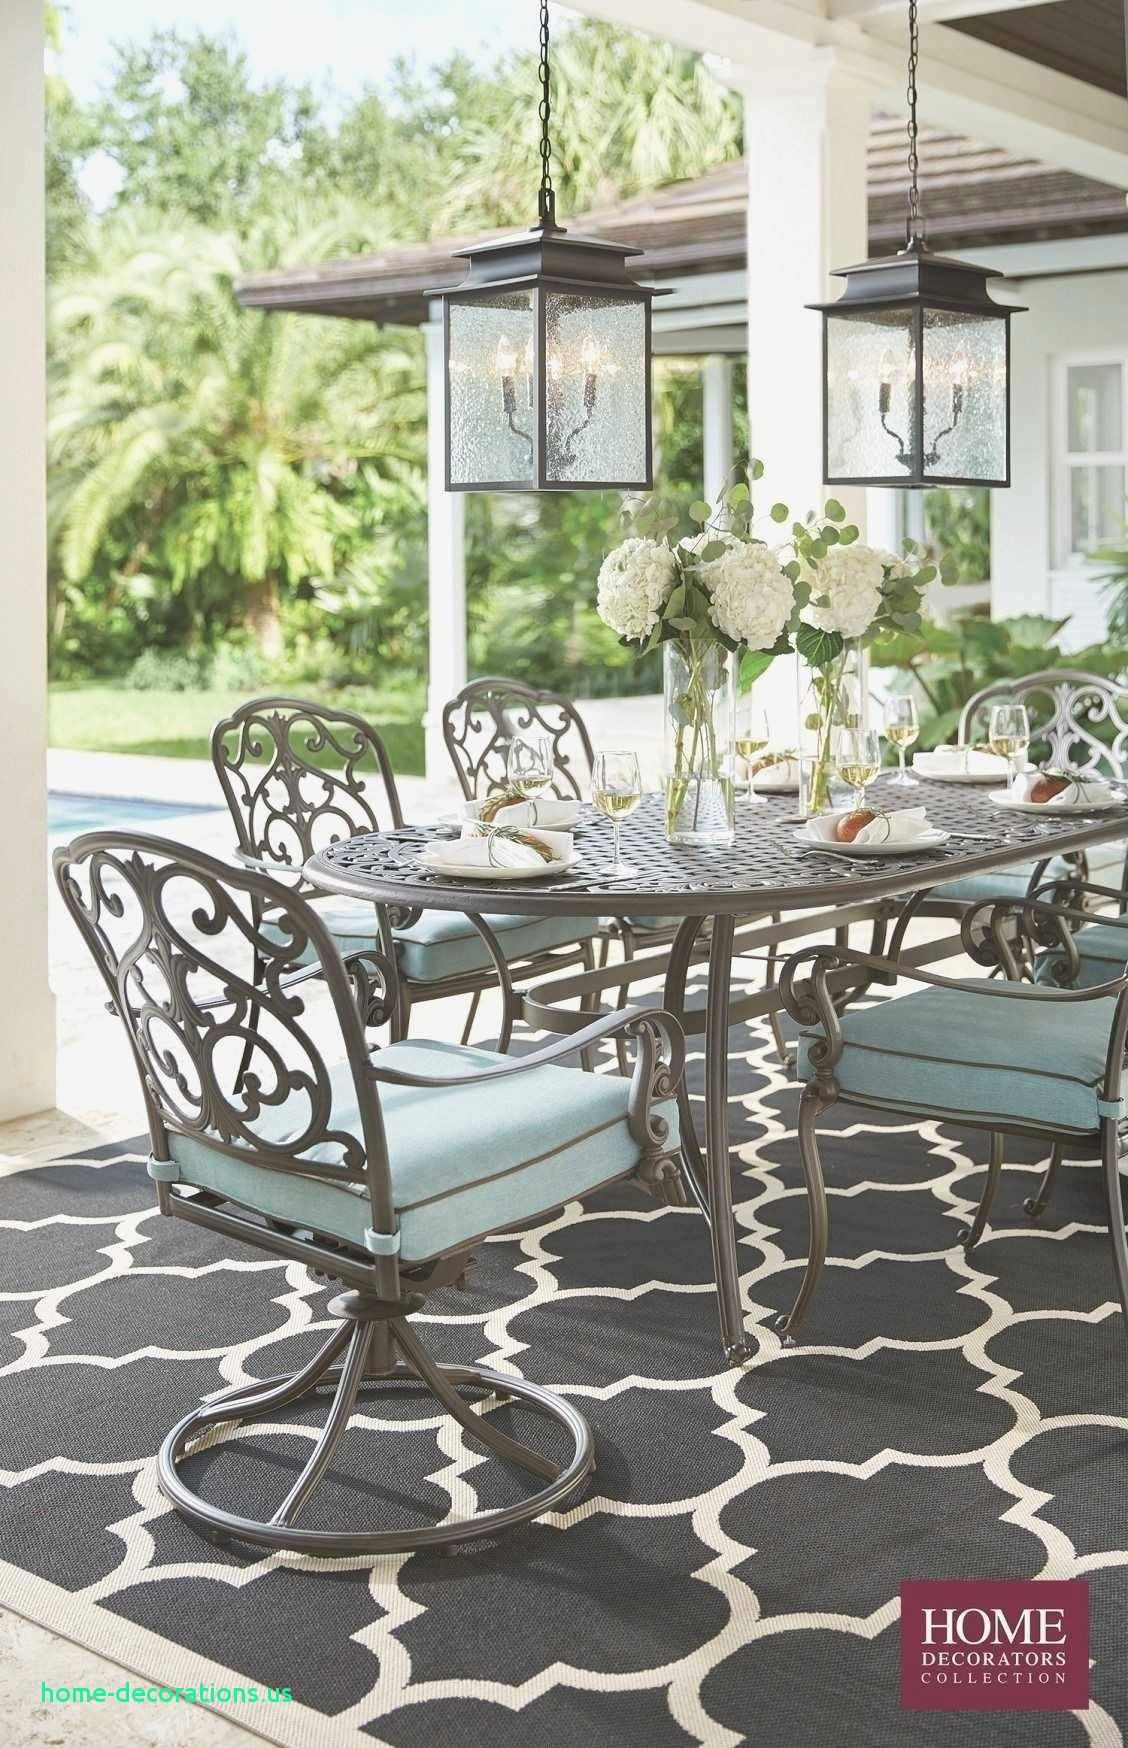 Awesome Home Decorators Com Coupon Code Decorate Pinterest